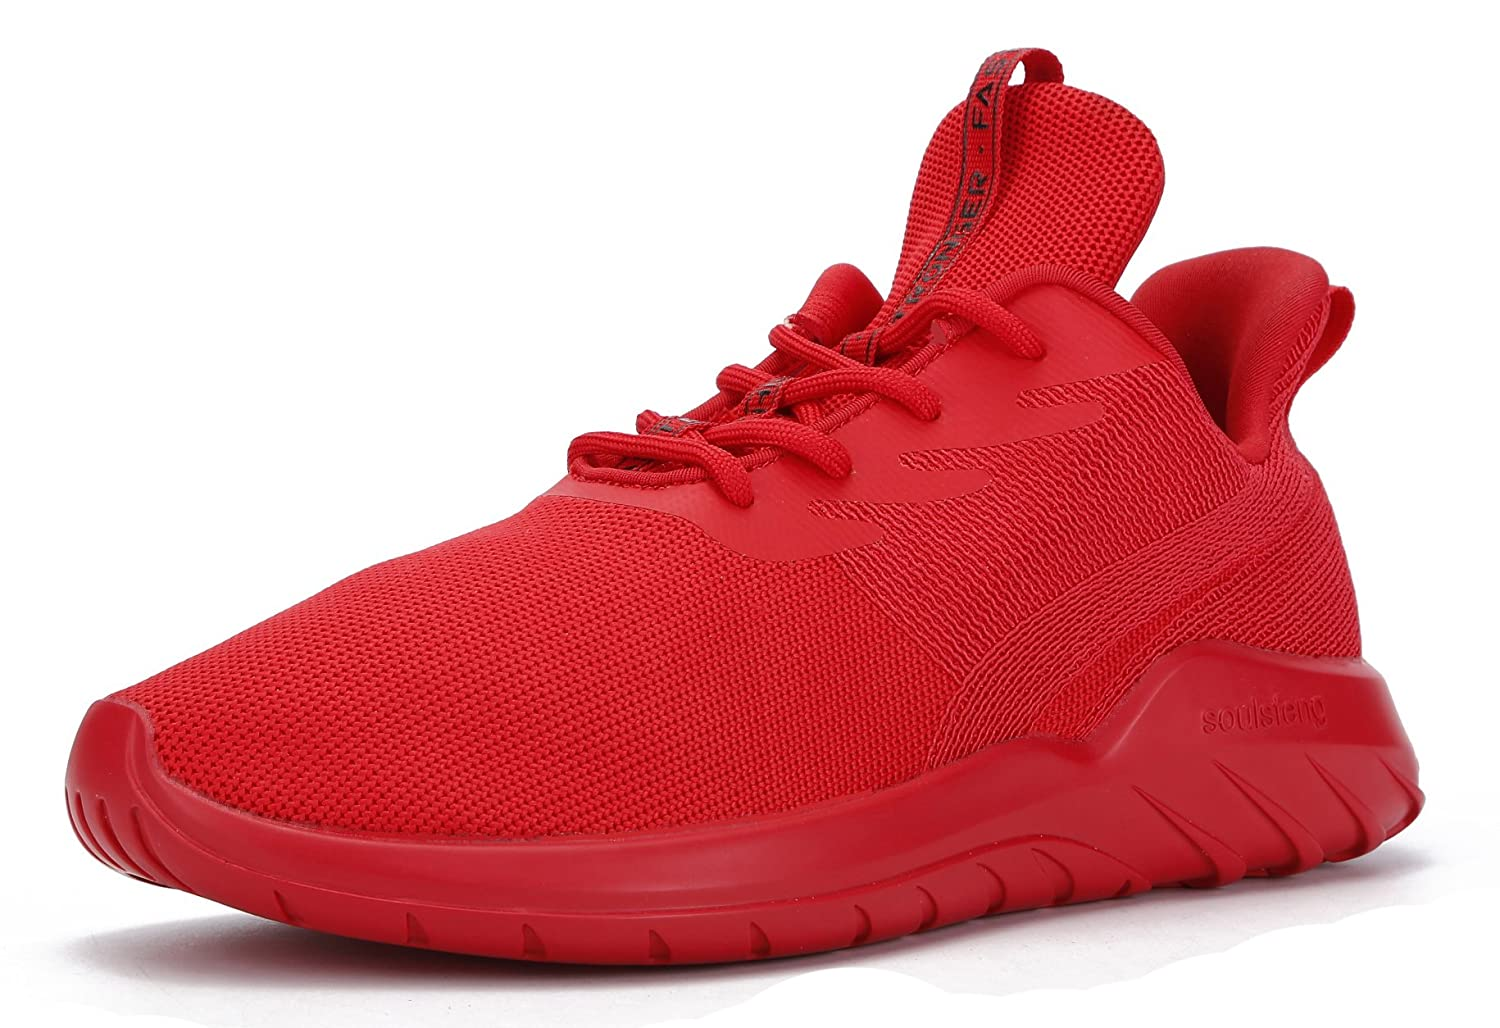 Soulsfeng Men Women Unisex Casual Fashion Sneakers Lightweight Breathable Athletic Sport Shoes B06VX46PM3 Men US12.5=EUR47=30.5CM|Red